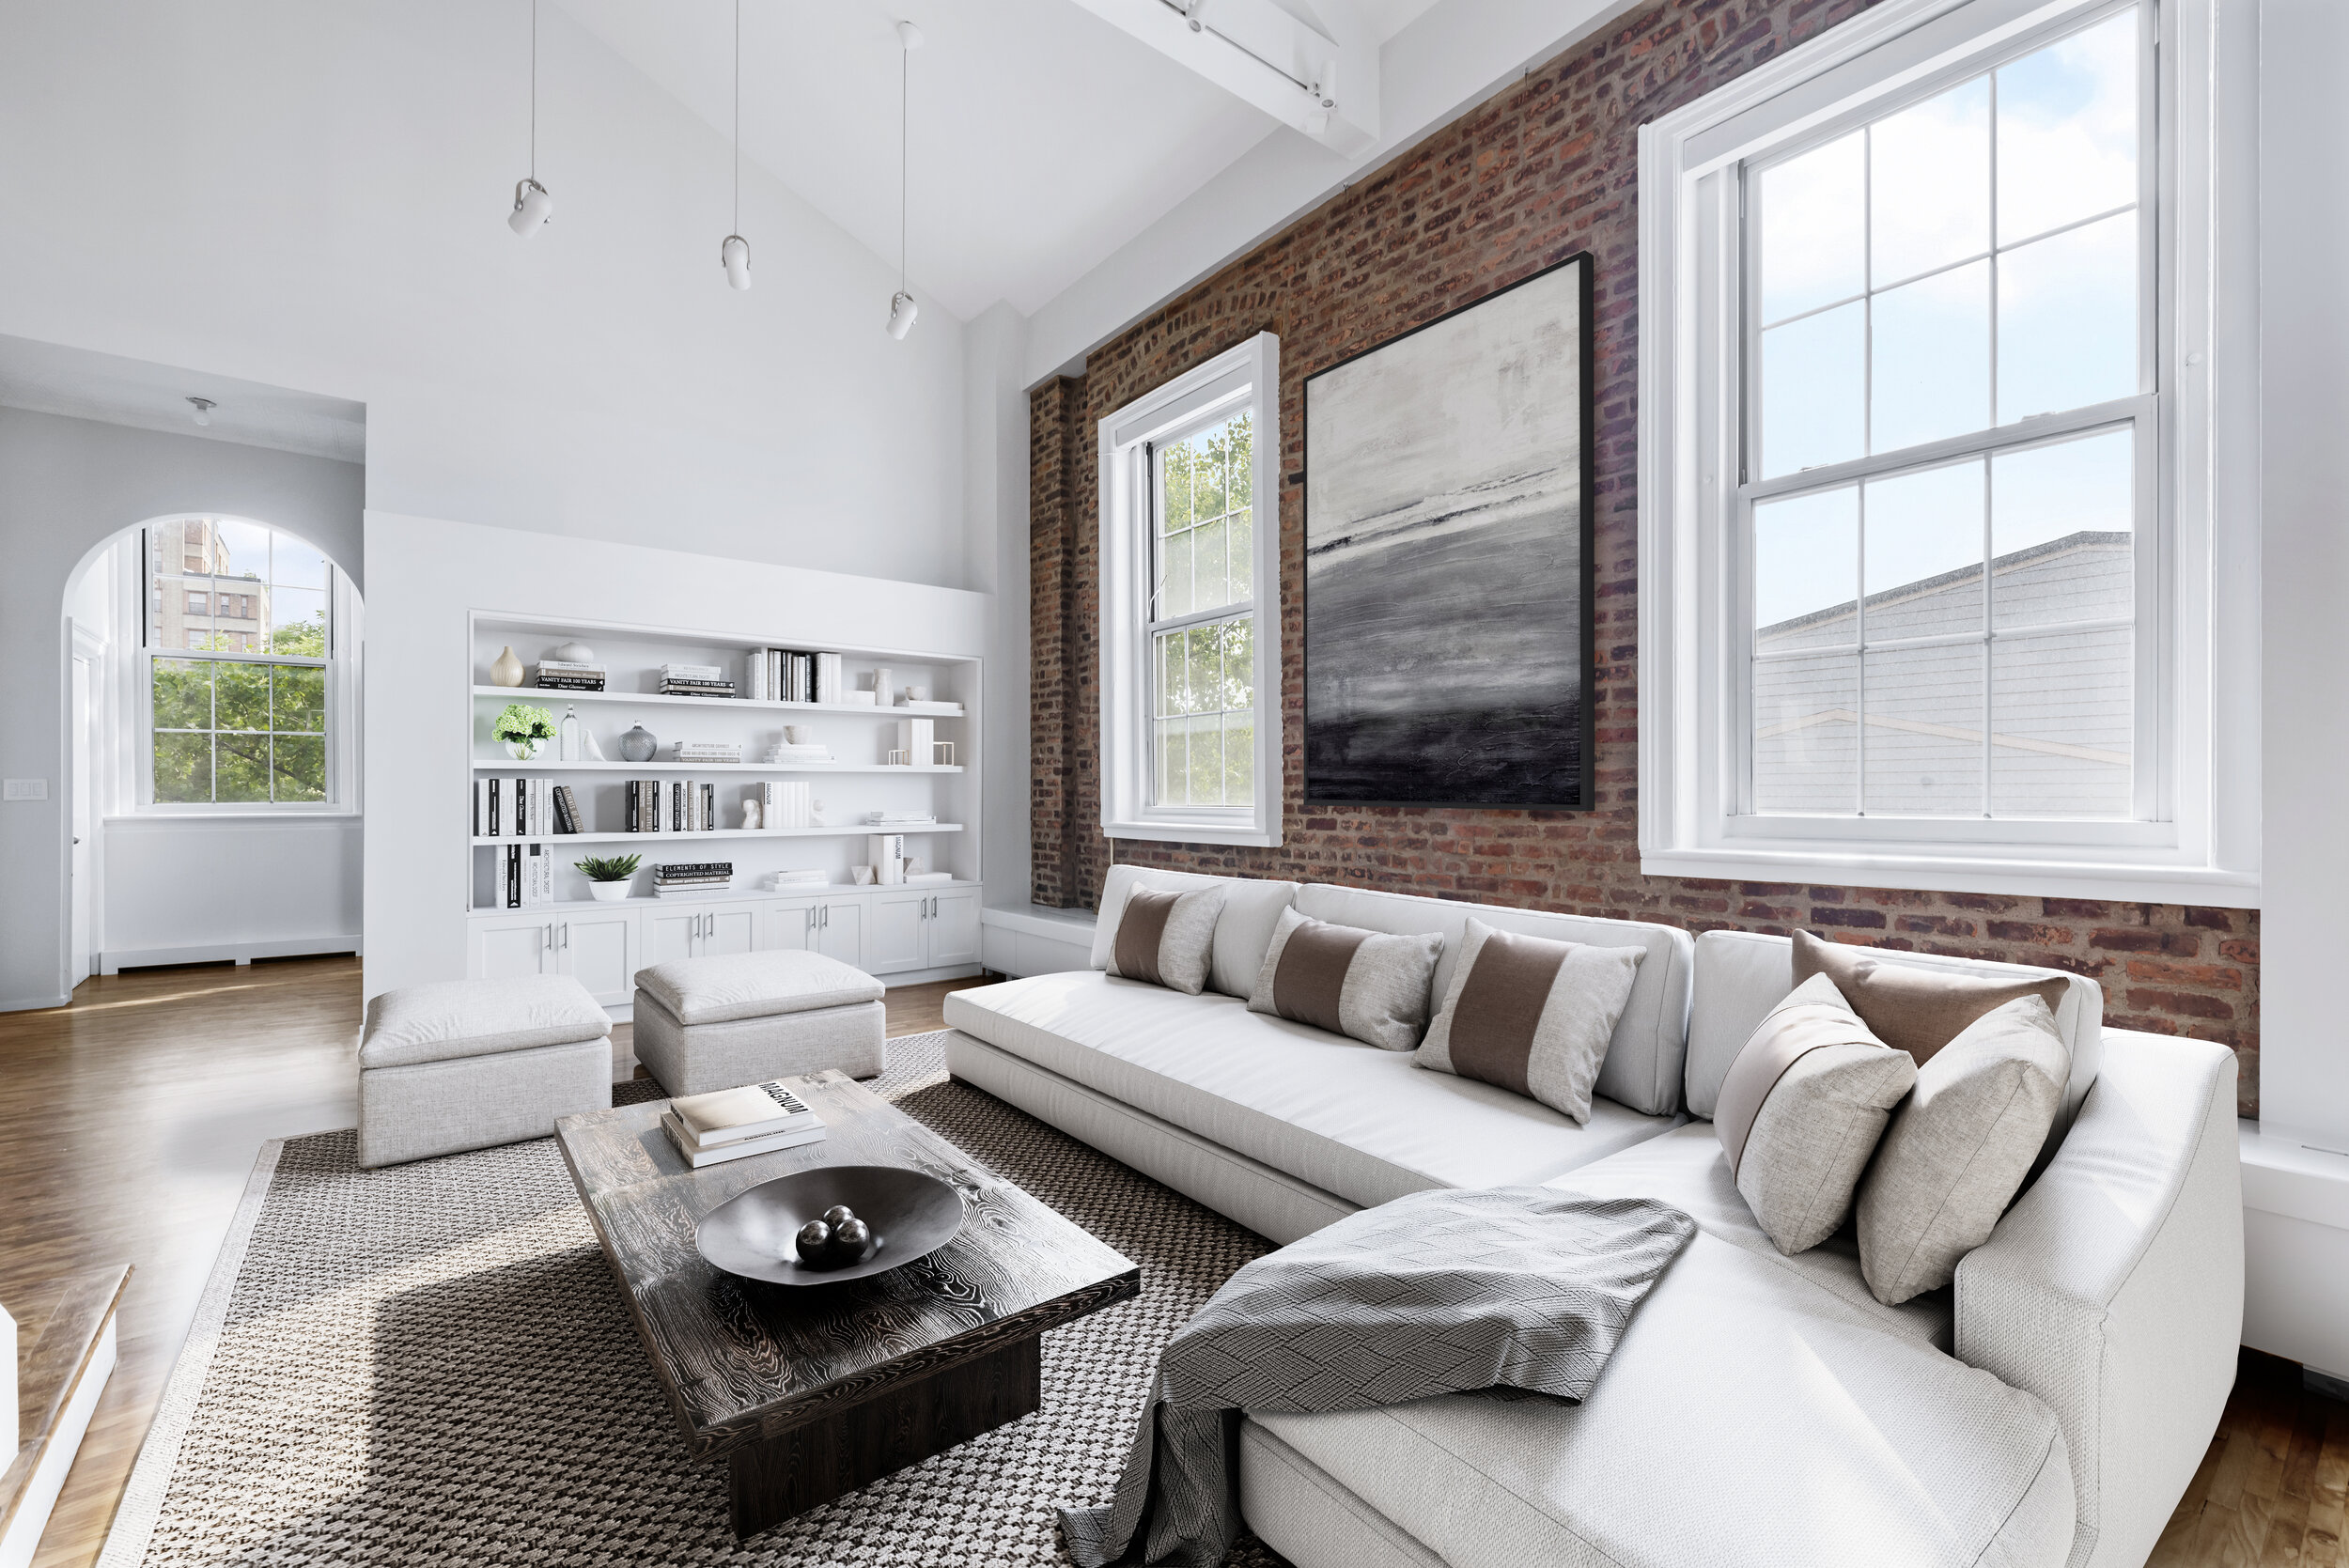 HVAC was installed in order to leave the 7-ft sash windows unobstructed, and custom built-ins were added in the living areas to create additional storage and display space.